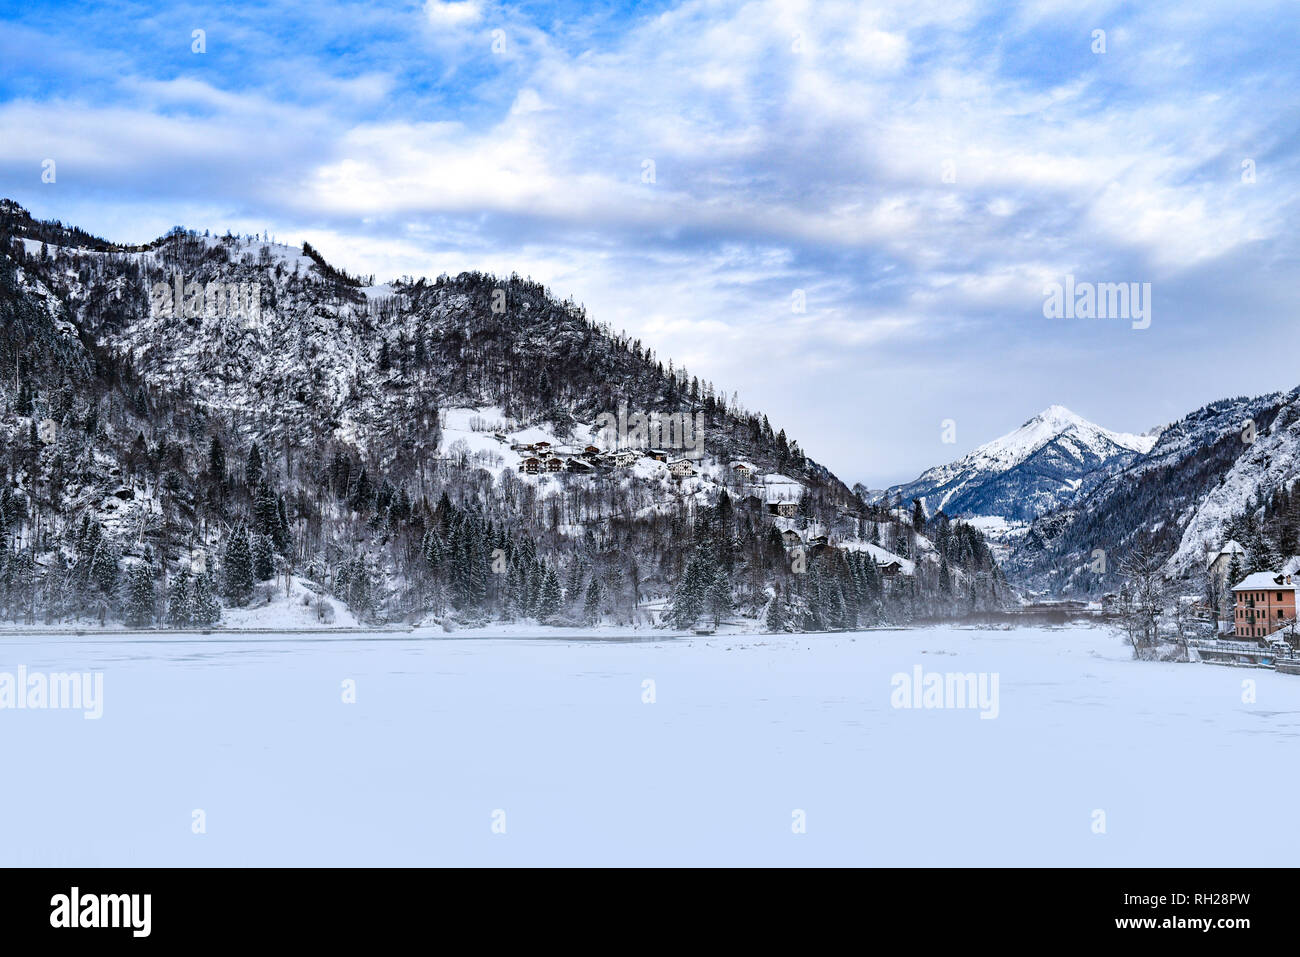 Winter landscape of the Dolomites mountains in Italy. - Stock Image